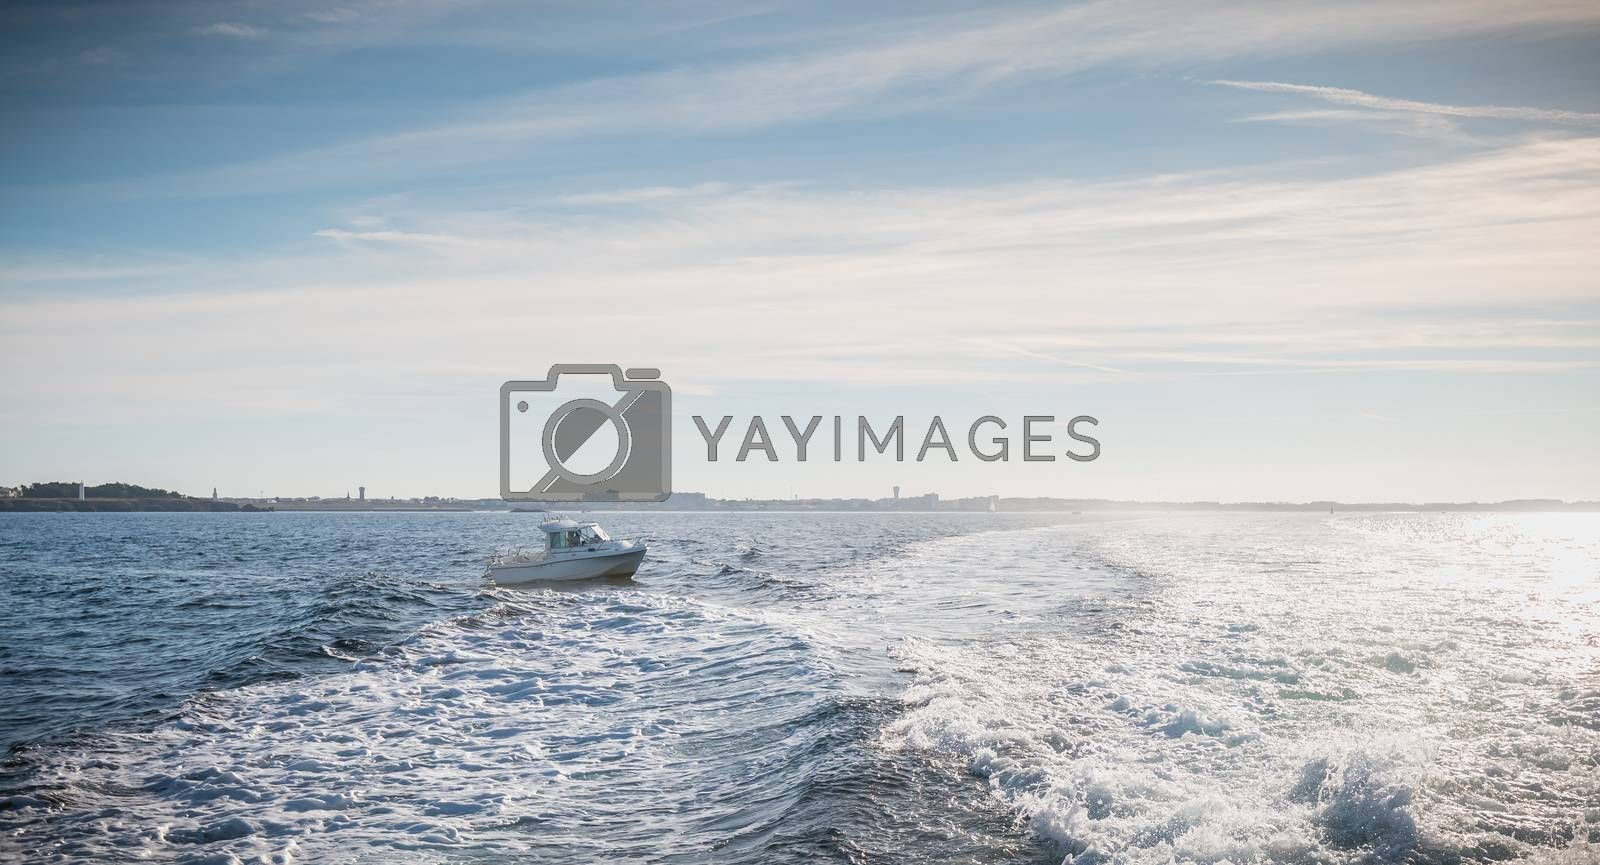 Small fishing boat entering the harbor accompanied by seagulls